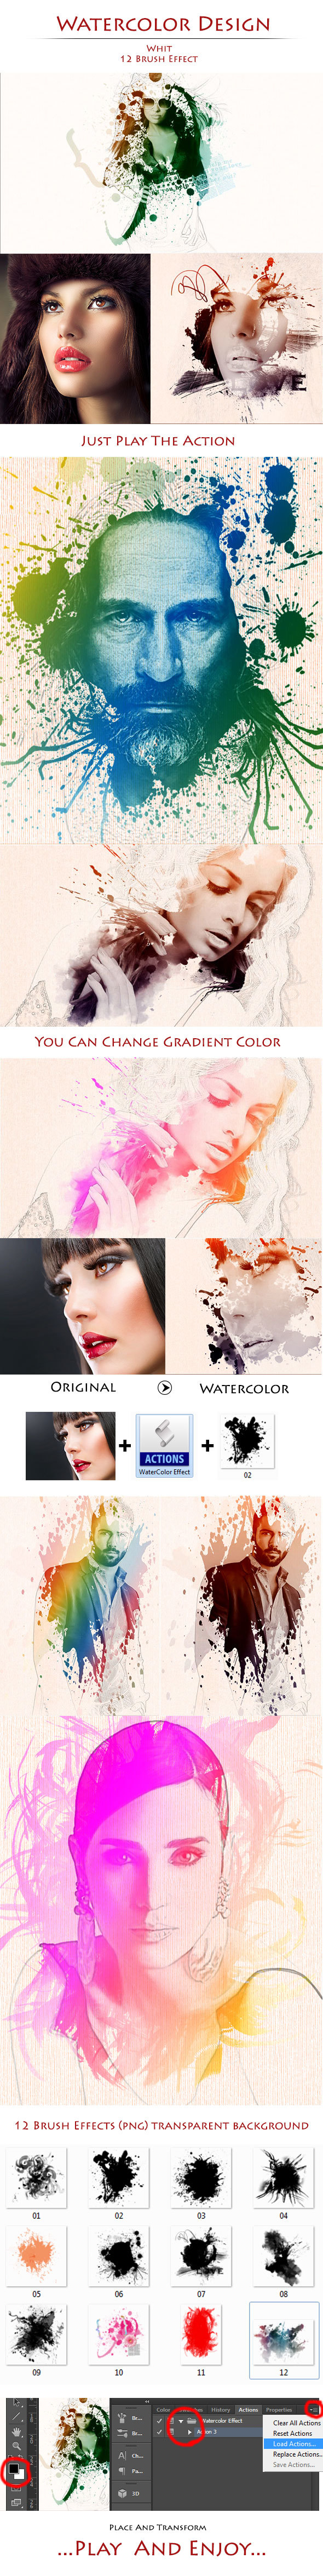 Watercolor Design - Photoshop Add-ons